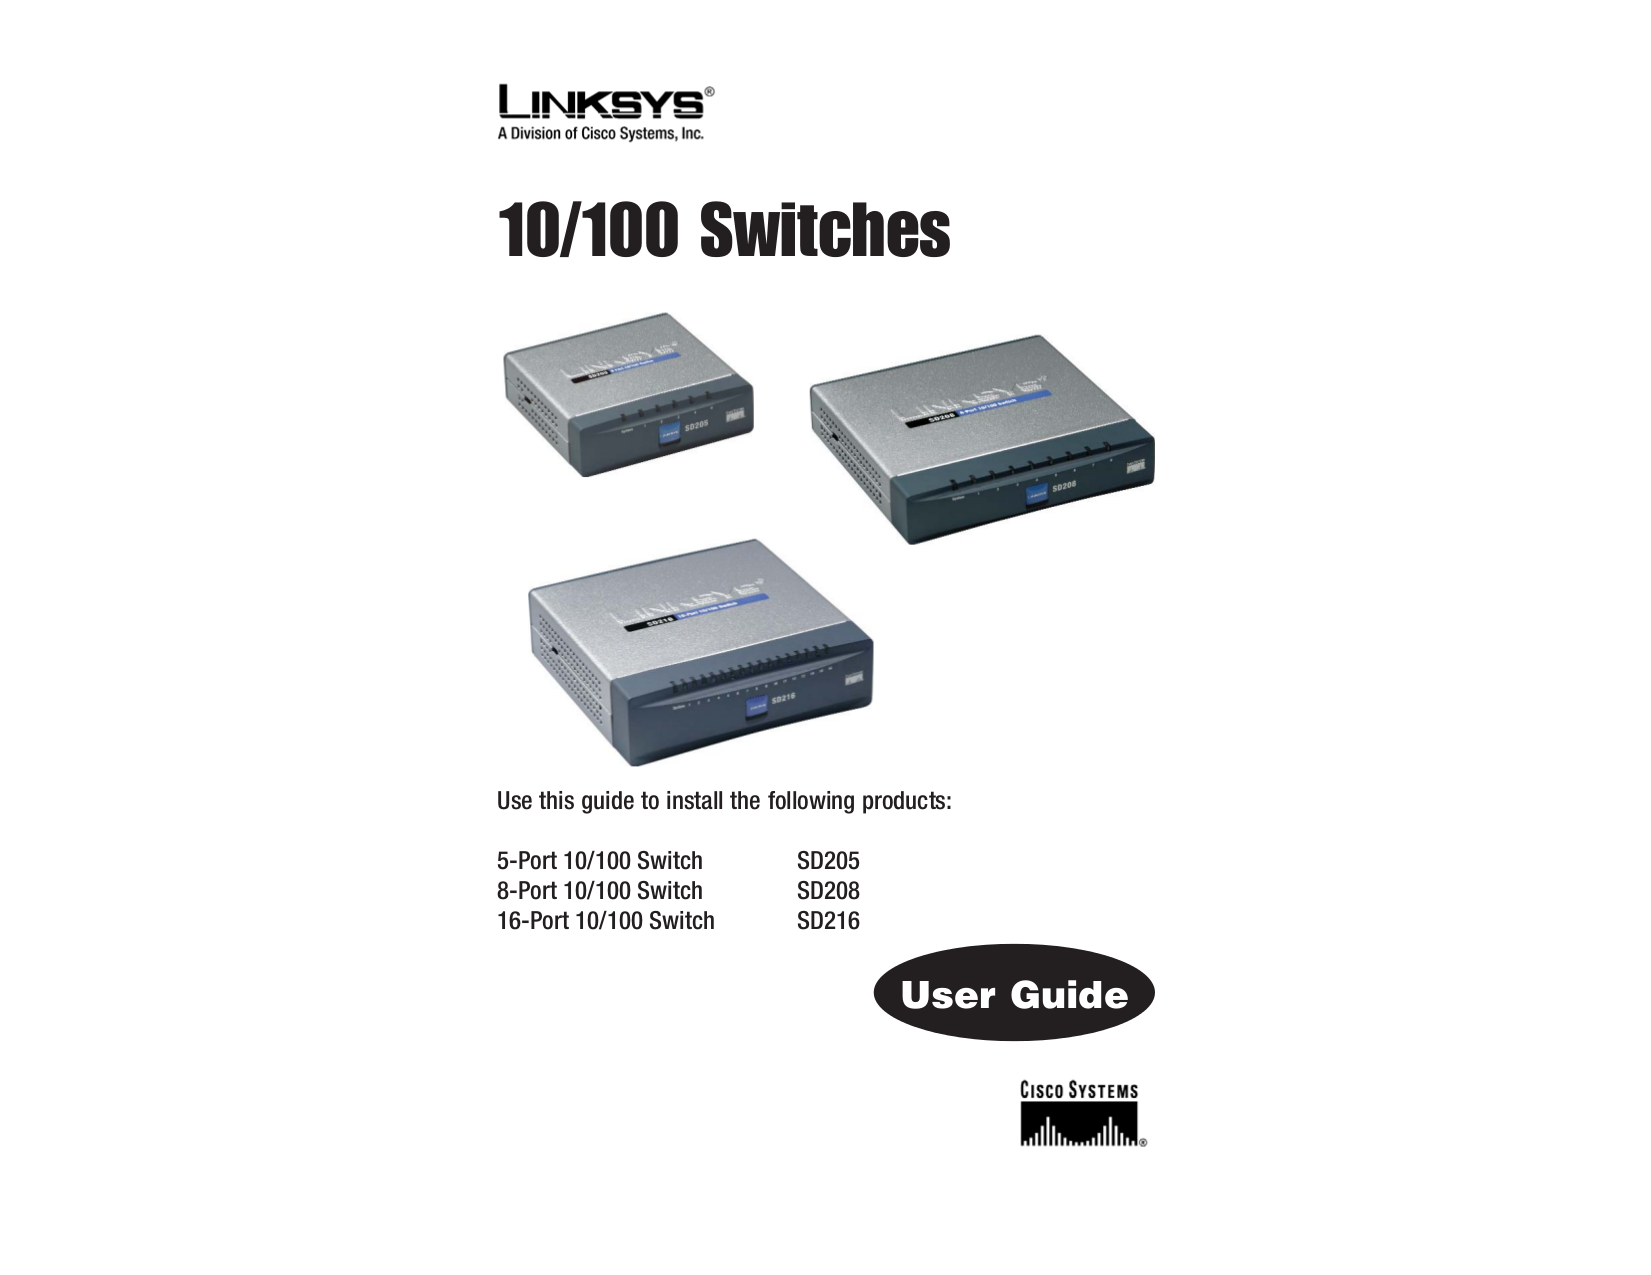 pdf for Linksys Switch SD205 manual